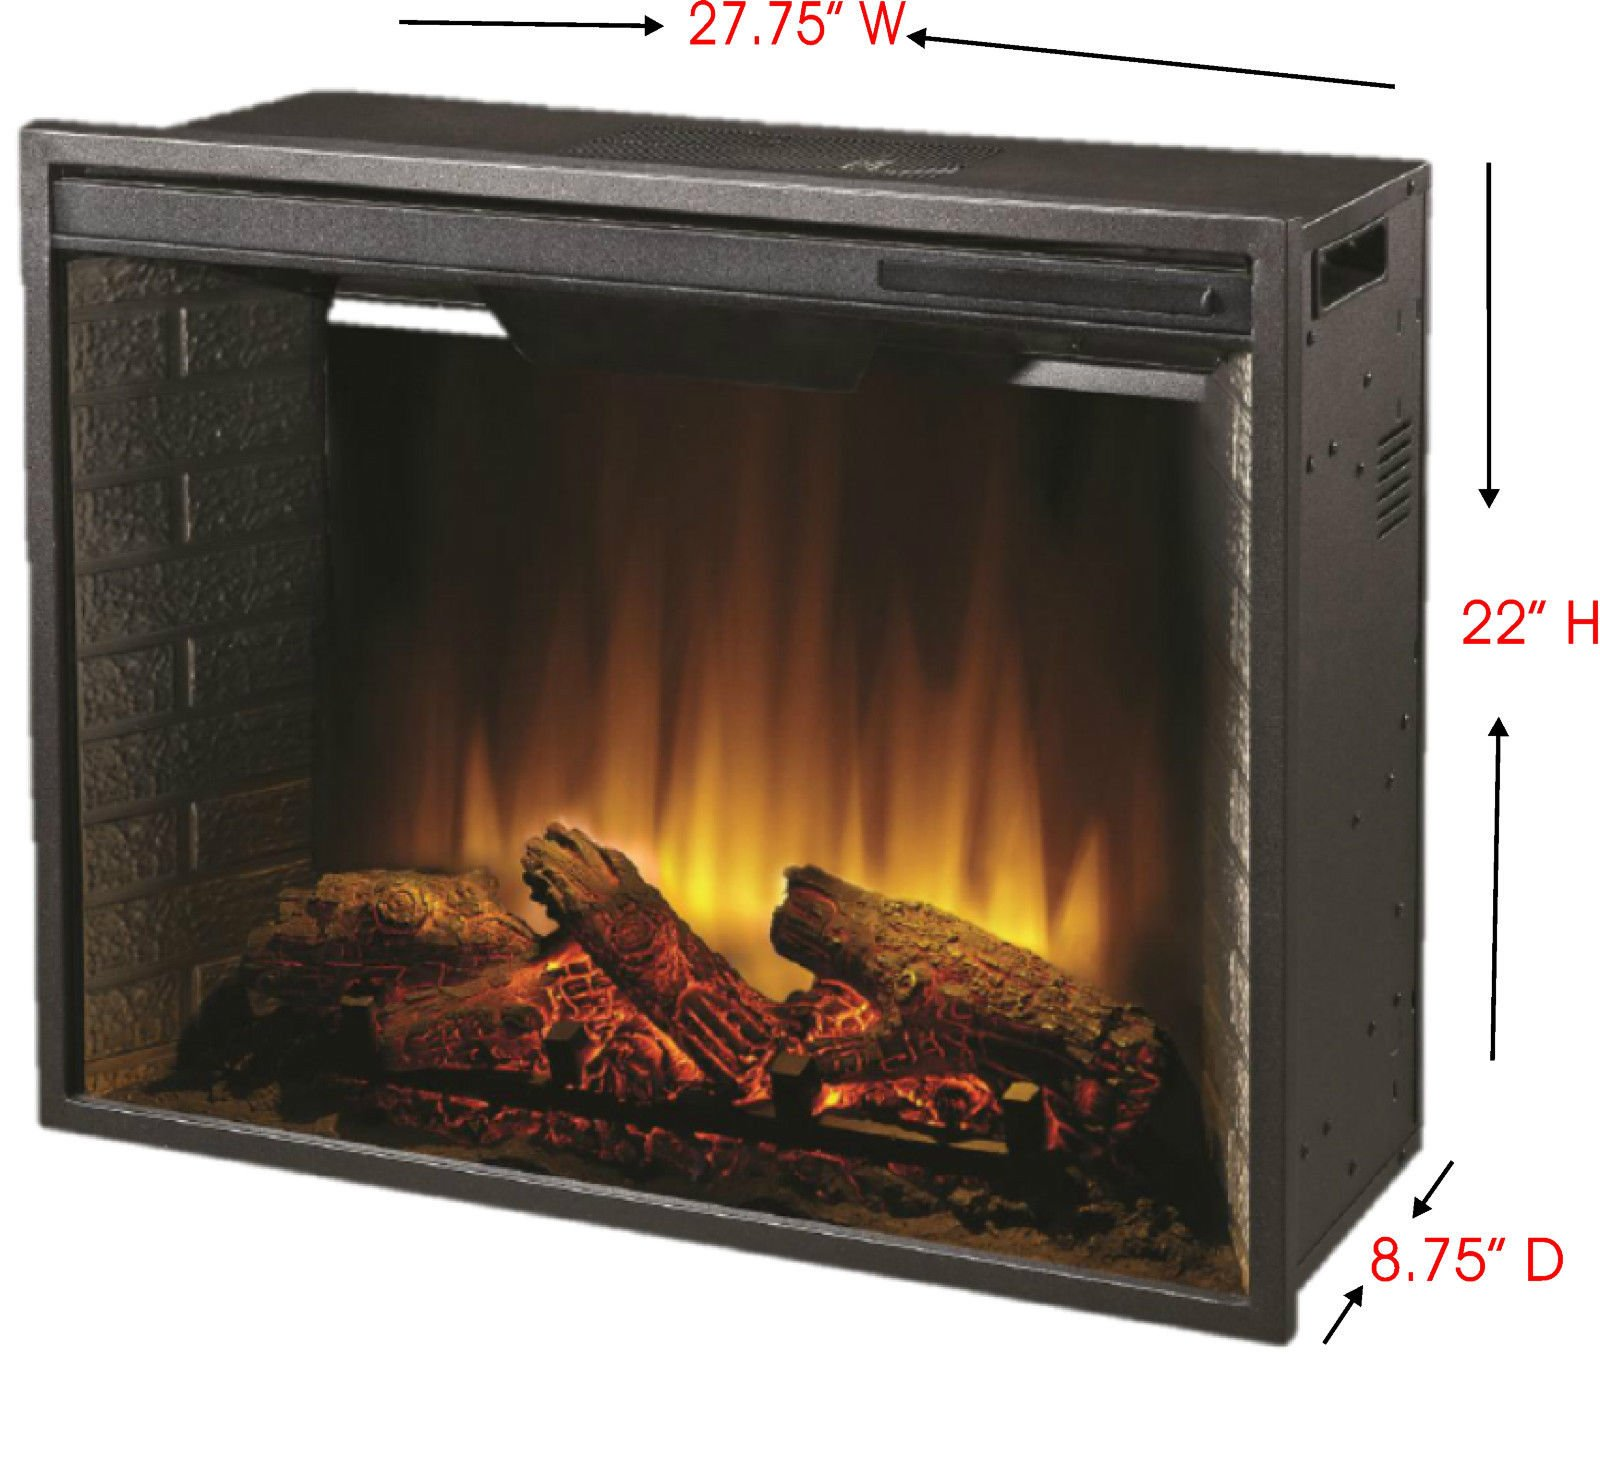 Electric Firebox Insert - with Fan Heater and Glowing Logs for Fireplace